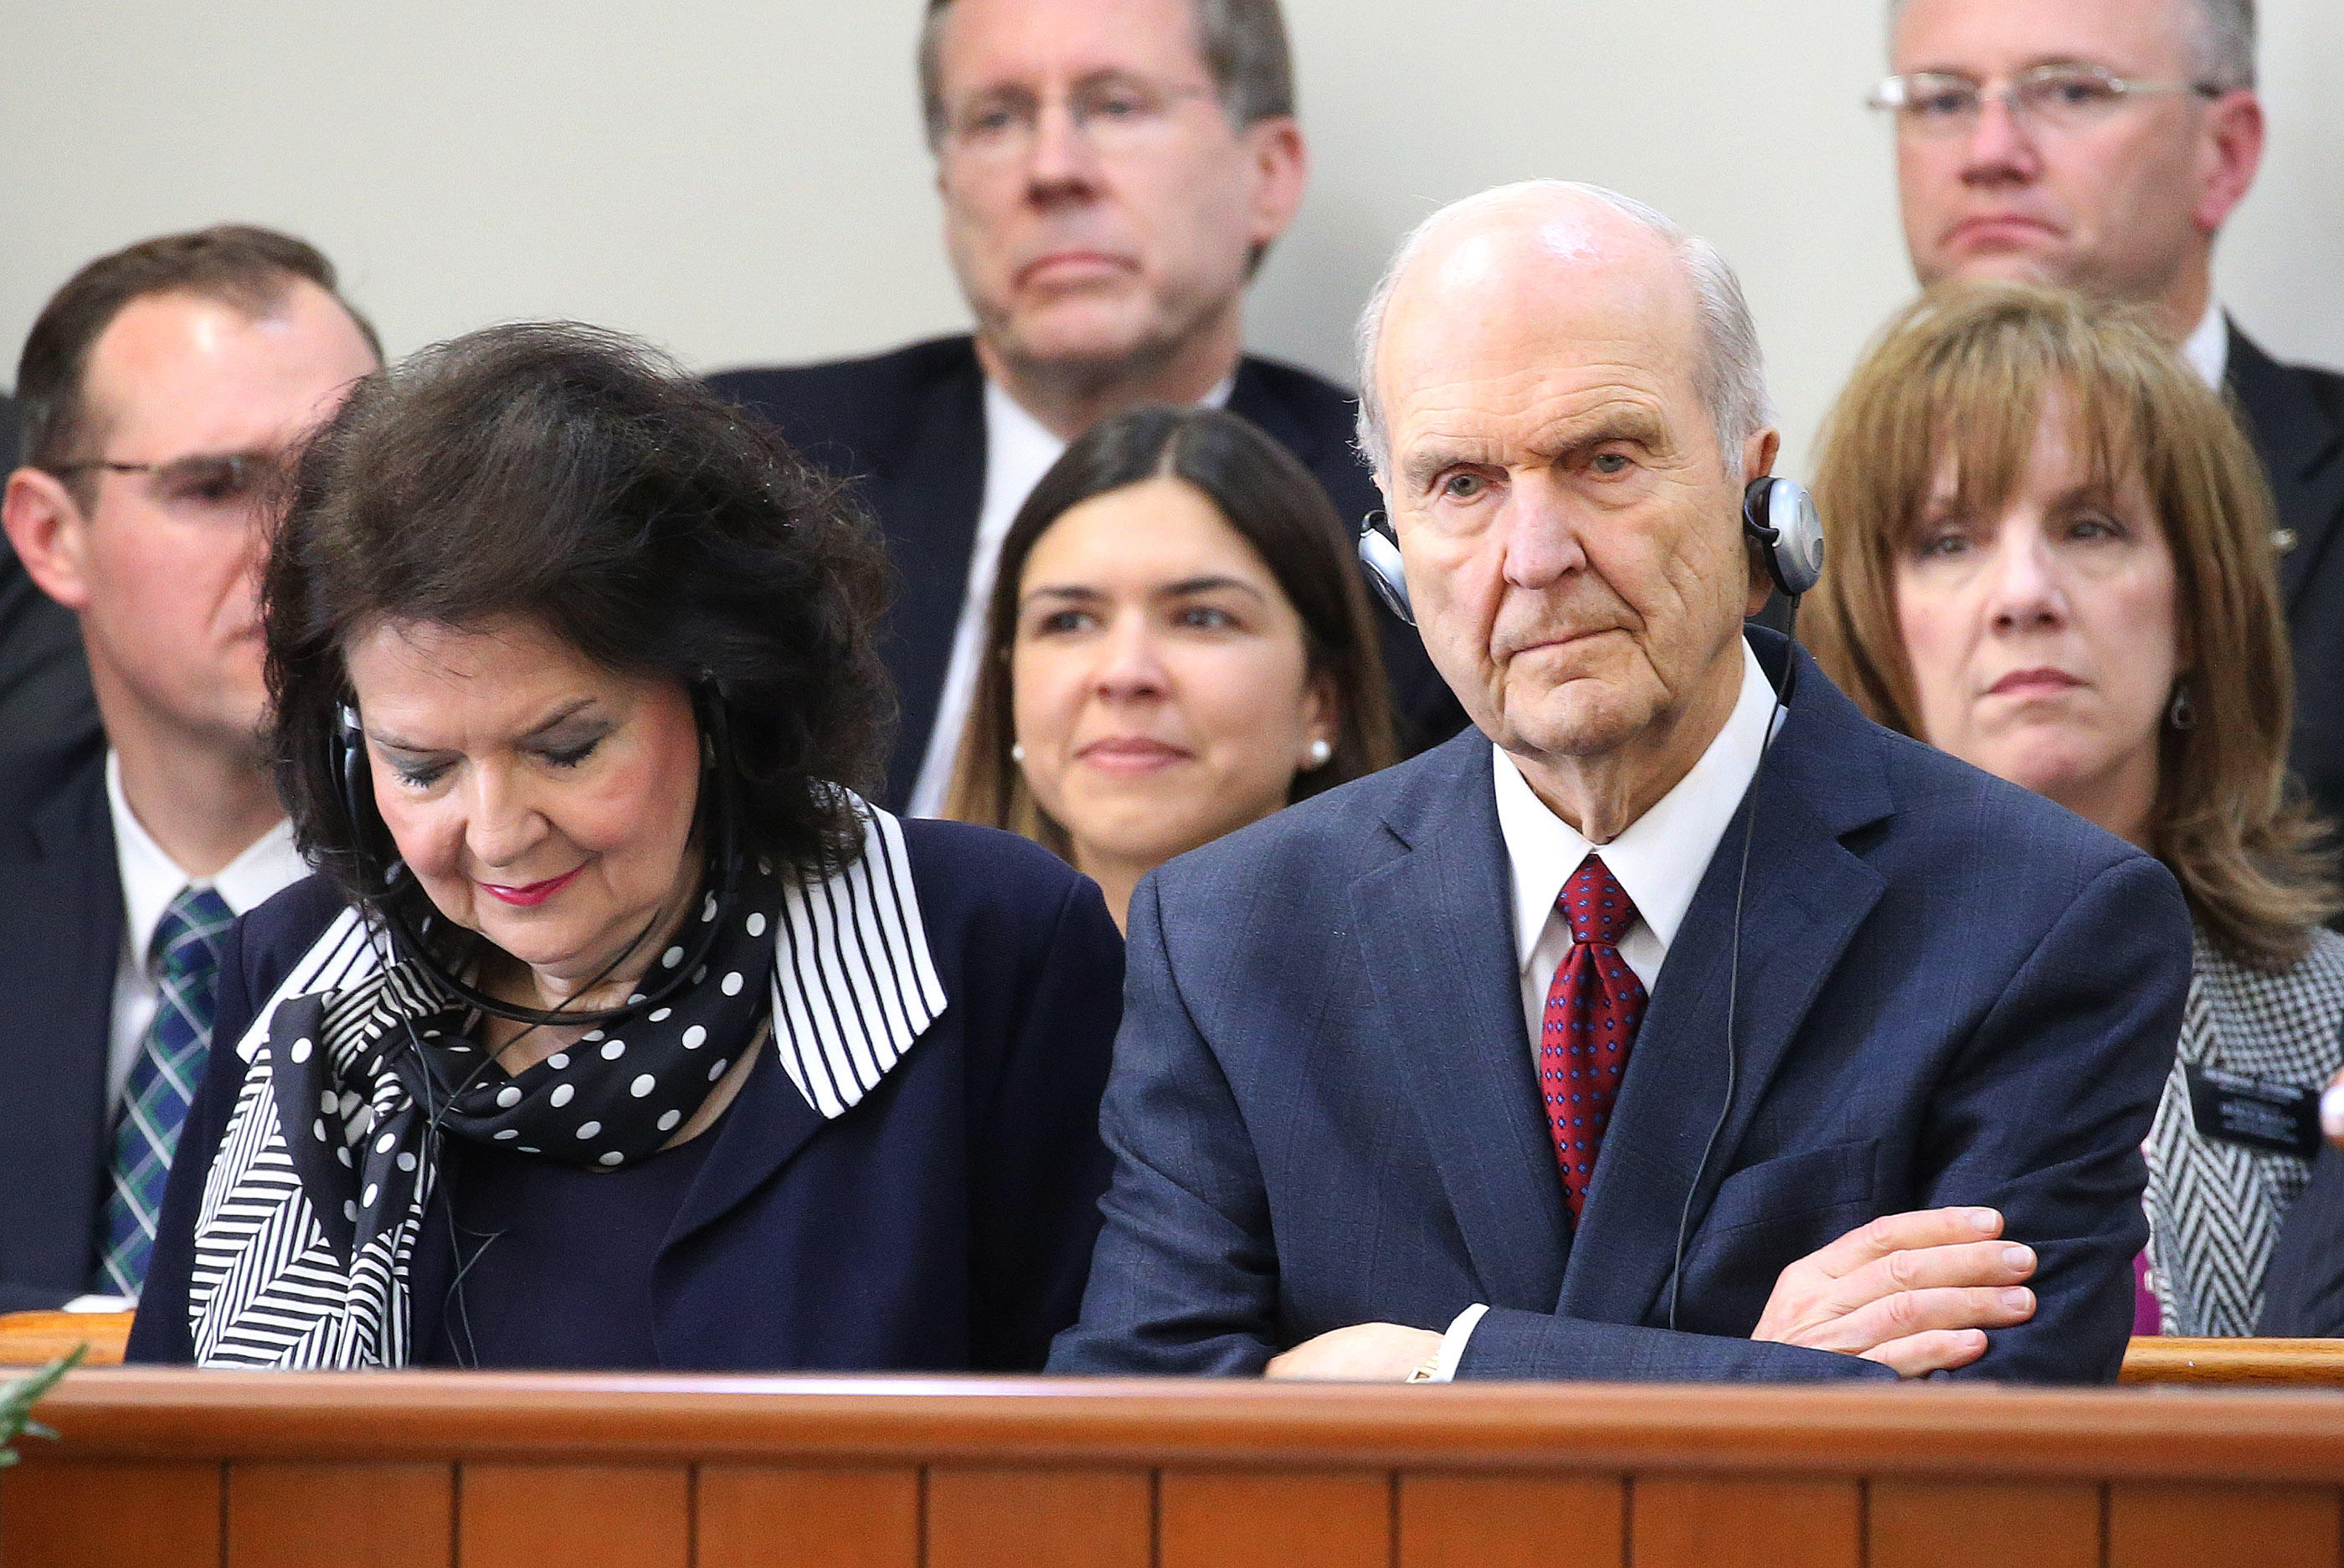 President Russell M. Nelson of The Church of Jesus Christ of Latter-day Saints and his wife, Sister Wendy Nelson, listen through an interpreter during a missionary meeting in Lima, Peru on Oct. 20, 2018.